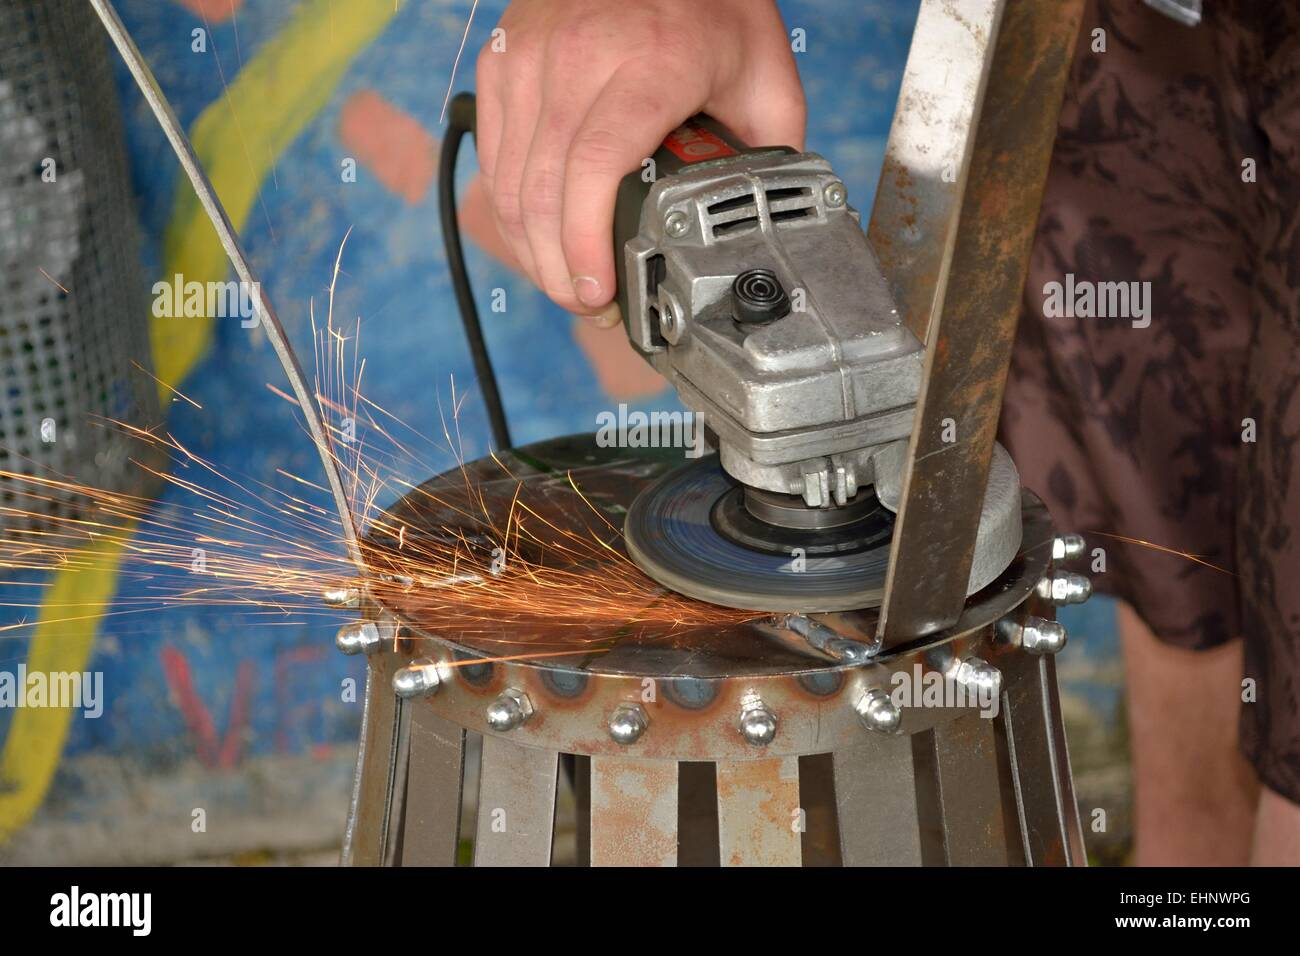 Sparks with an angle grinder - Stock Image